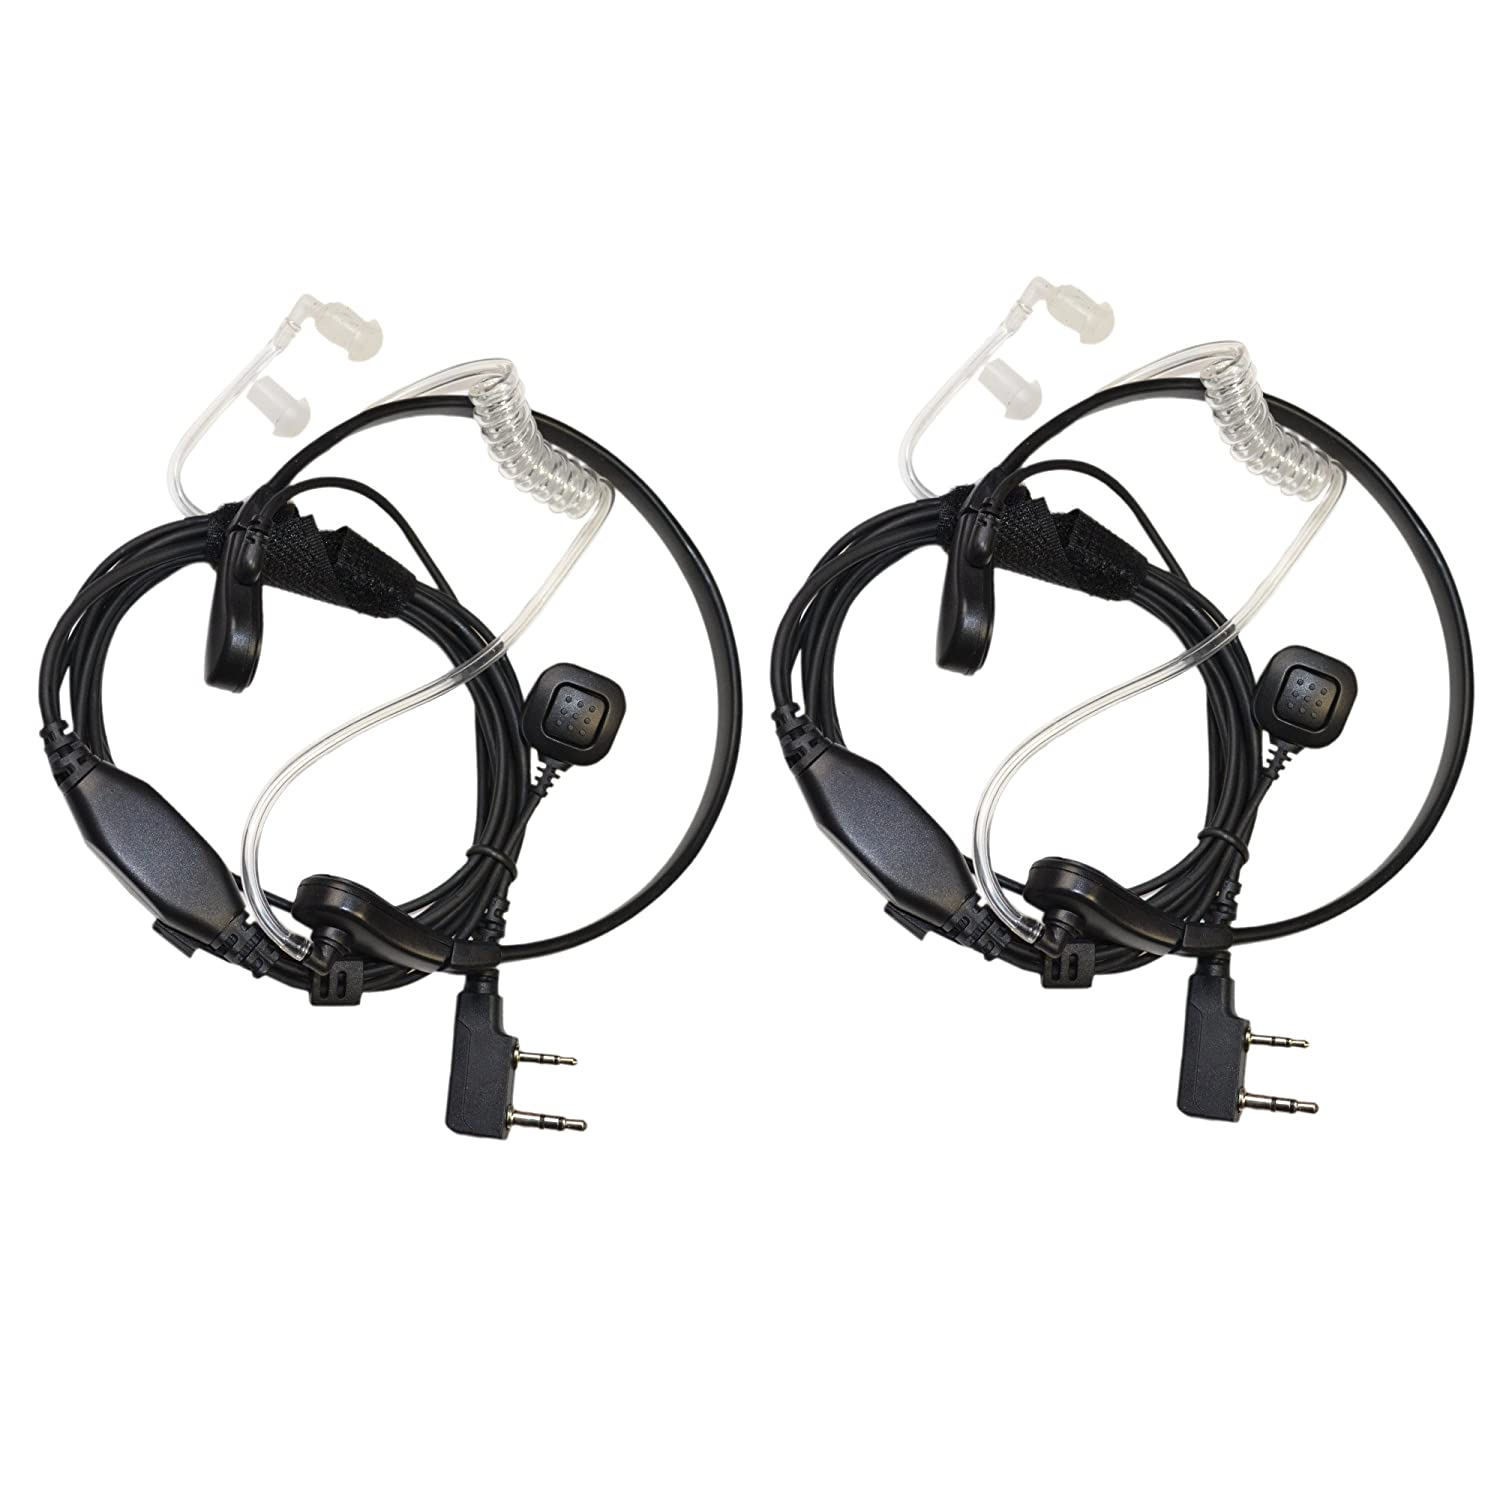 HQRP Hands Free Headset PTT Throat Mic for Baofeng BF-888 BF-888S BF-999 BF-999S